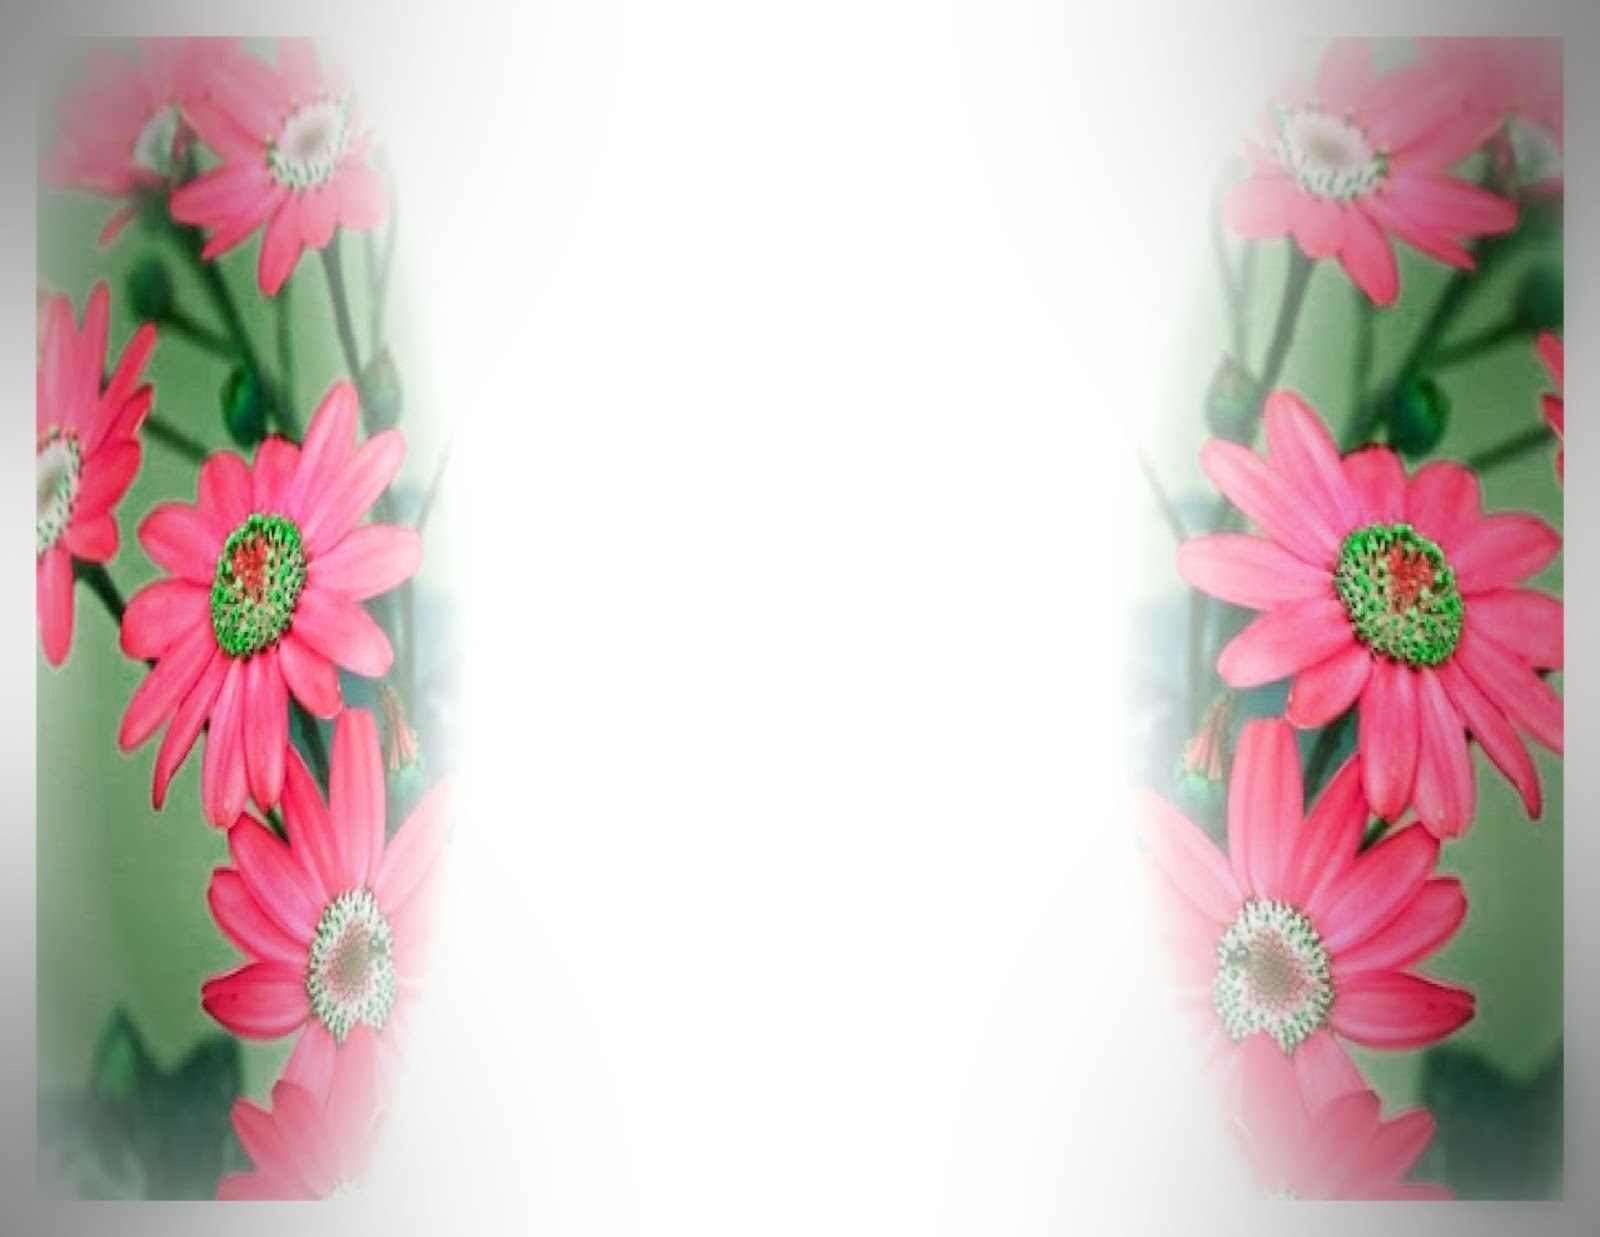 Red daisy flower border hd background free #1148